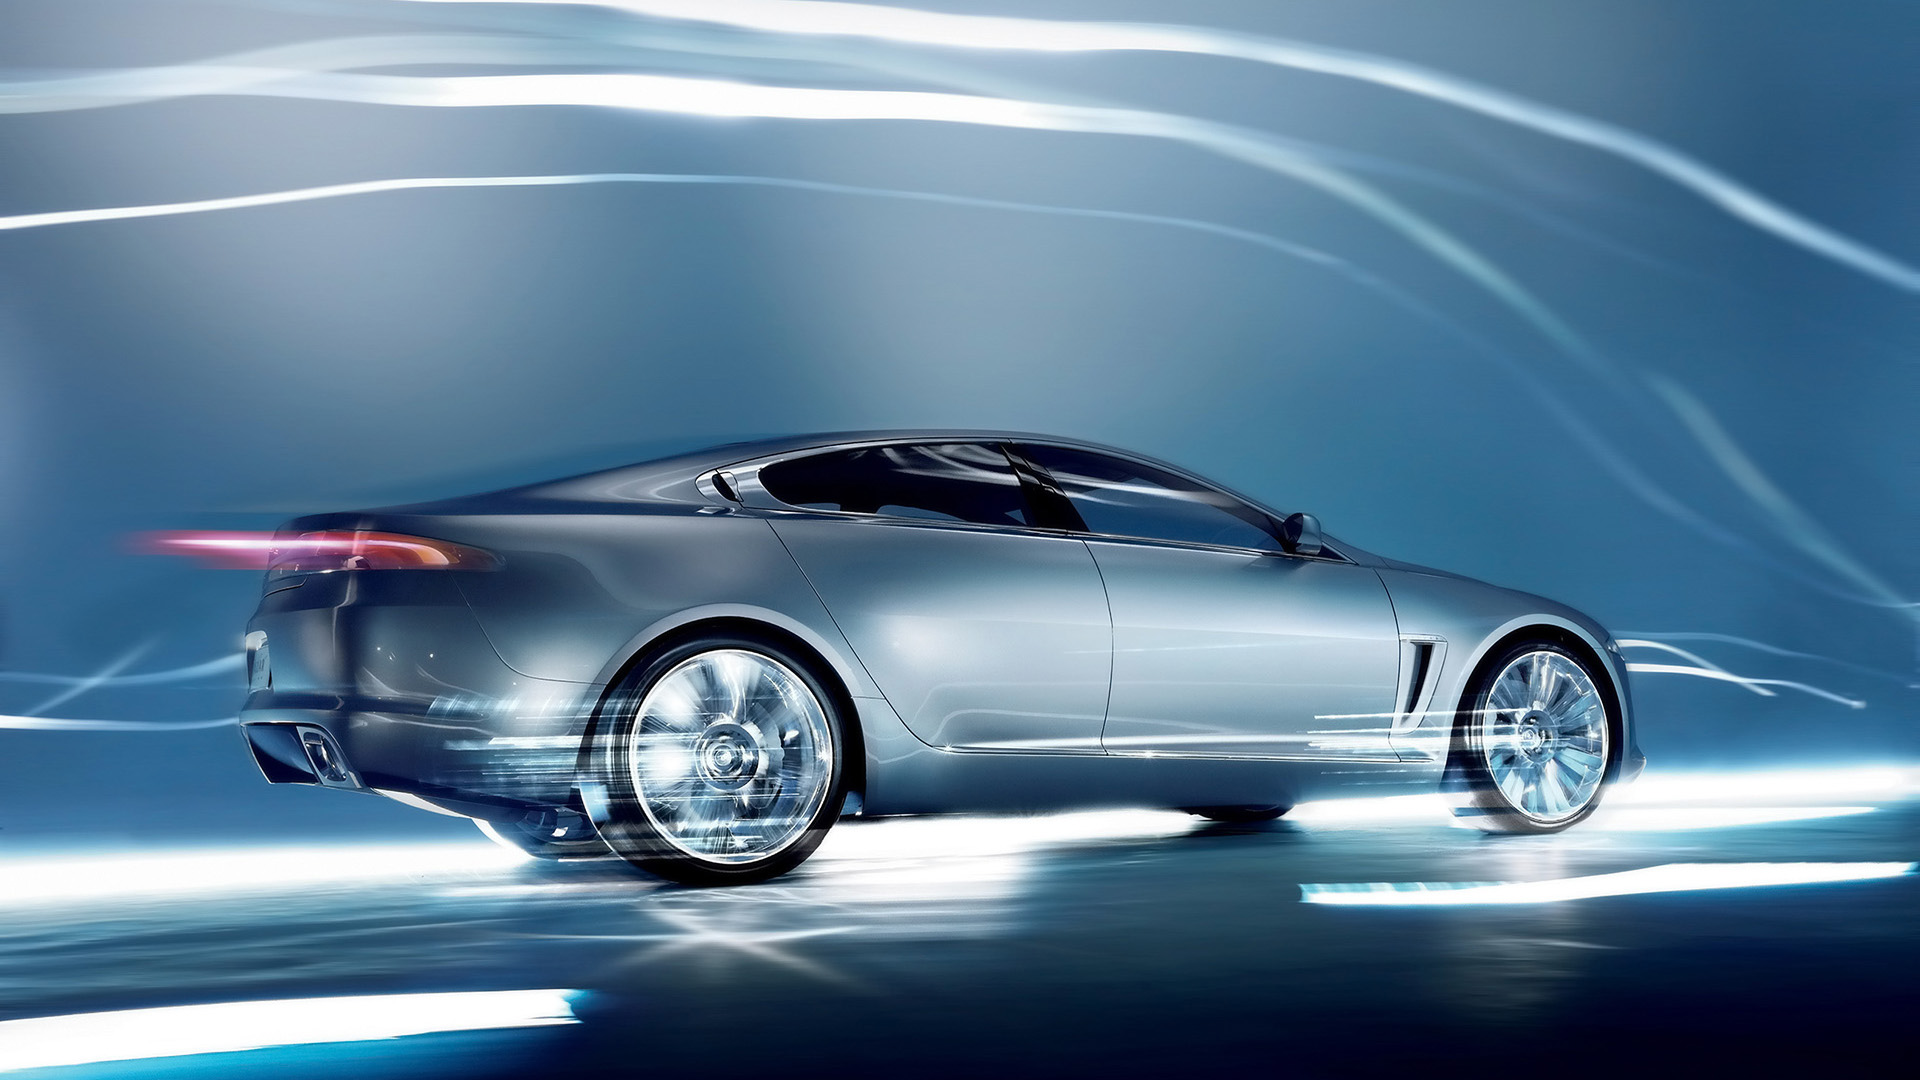 Picture Jaguar XF car on an abstract background